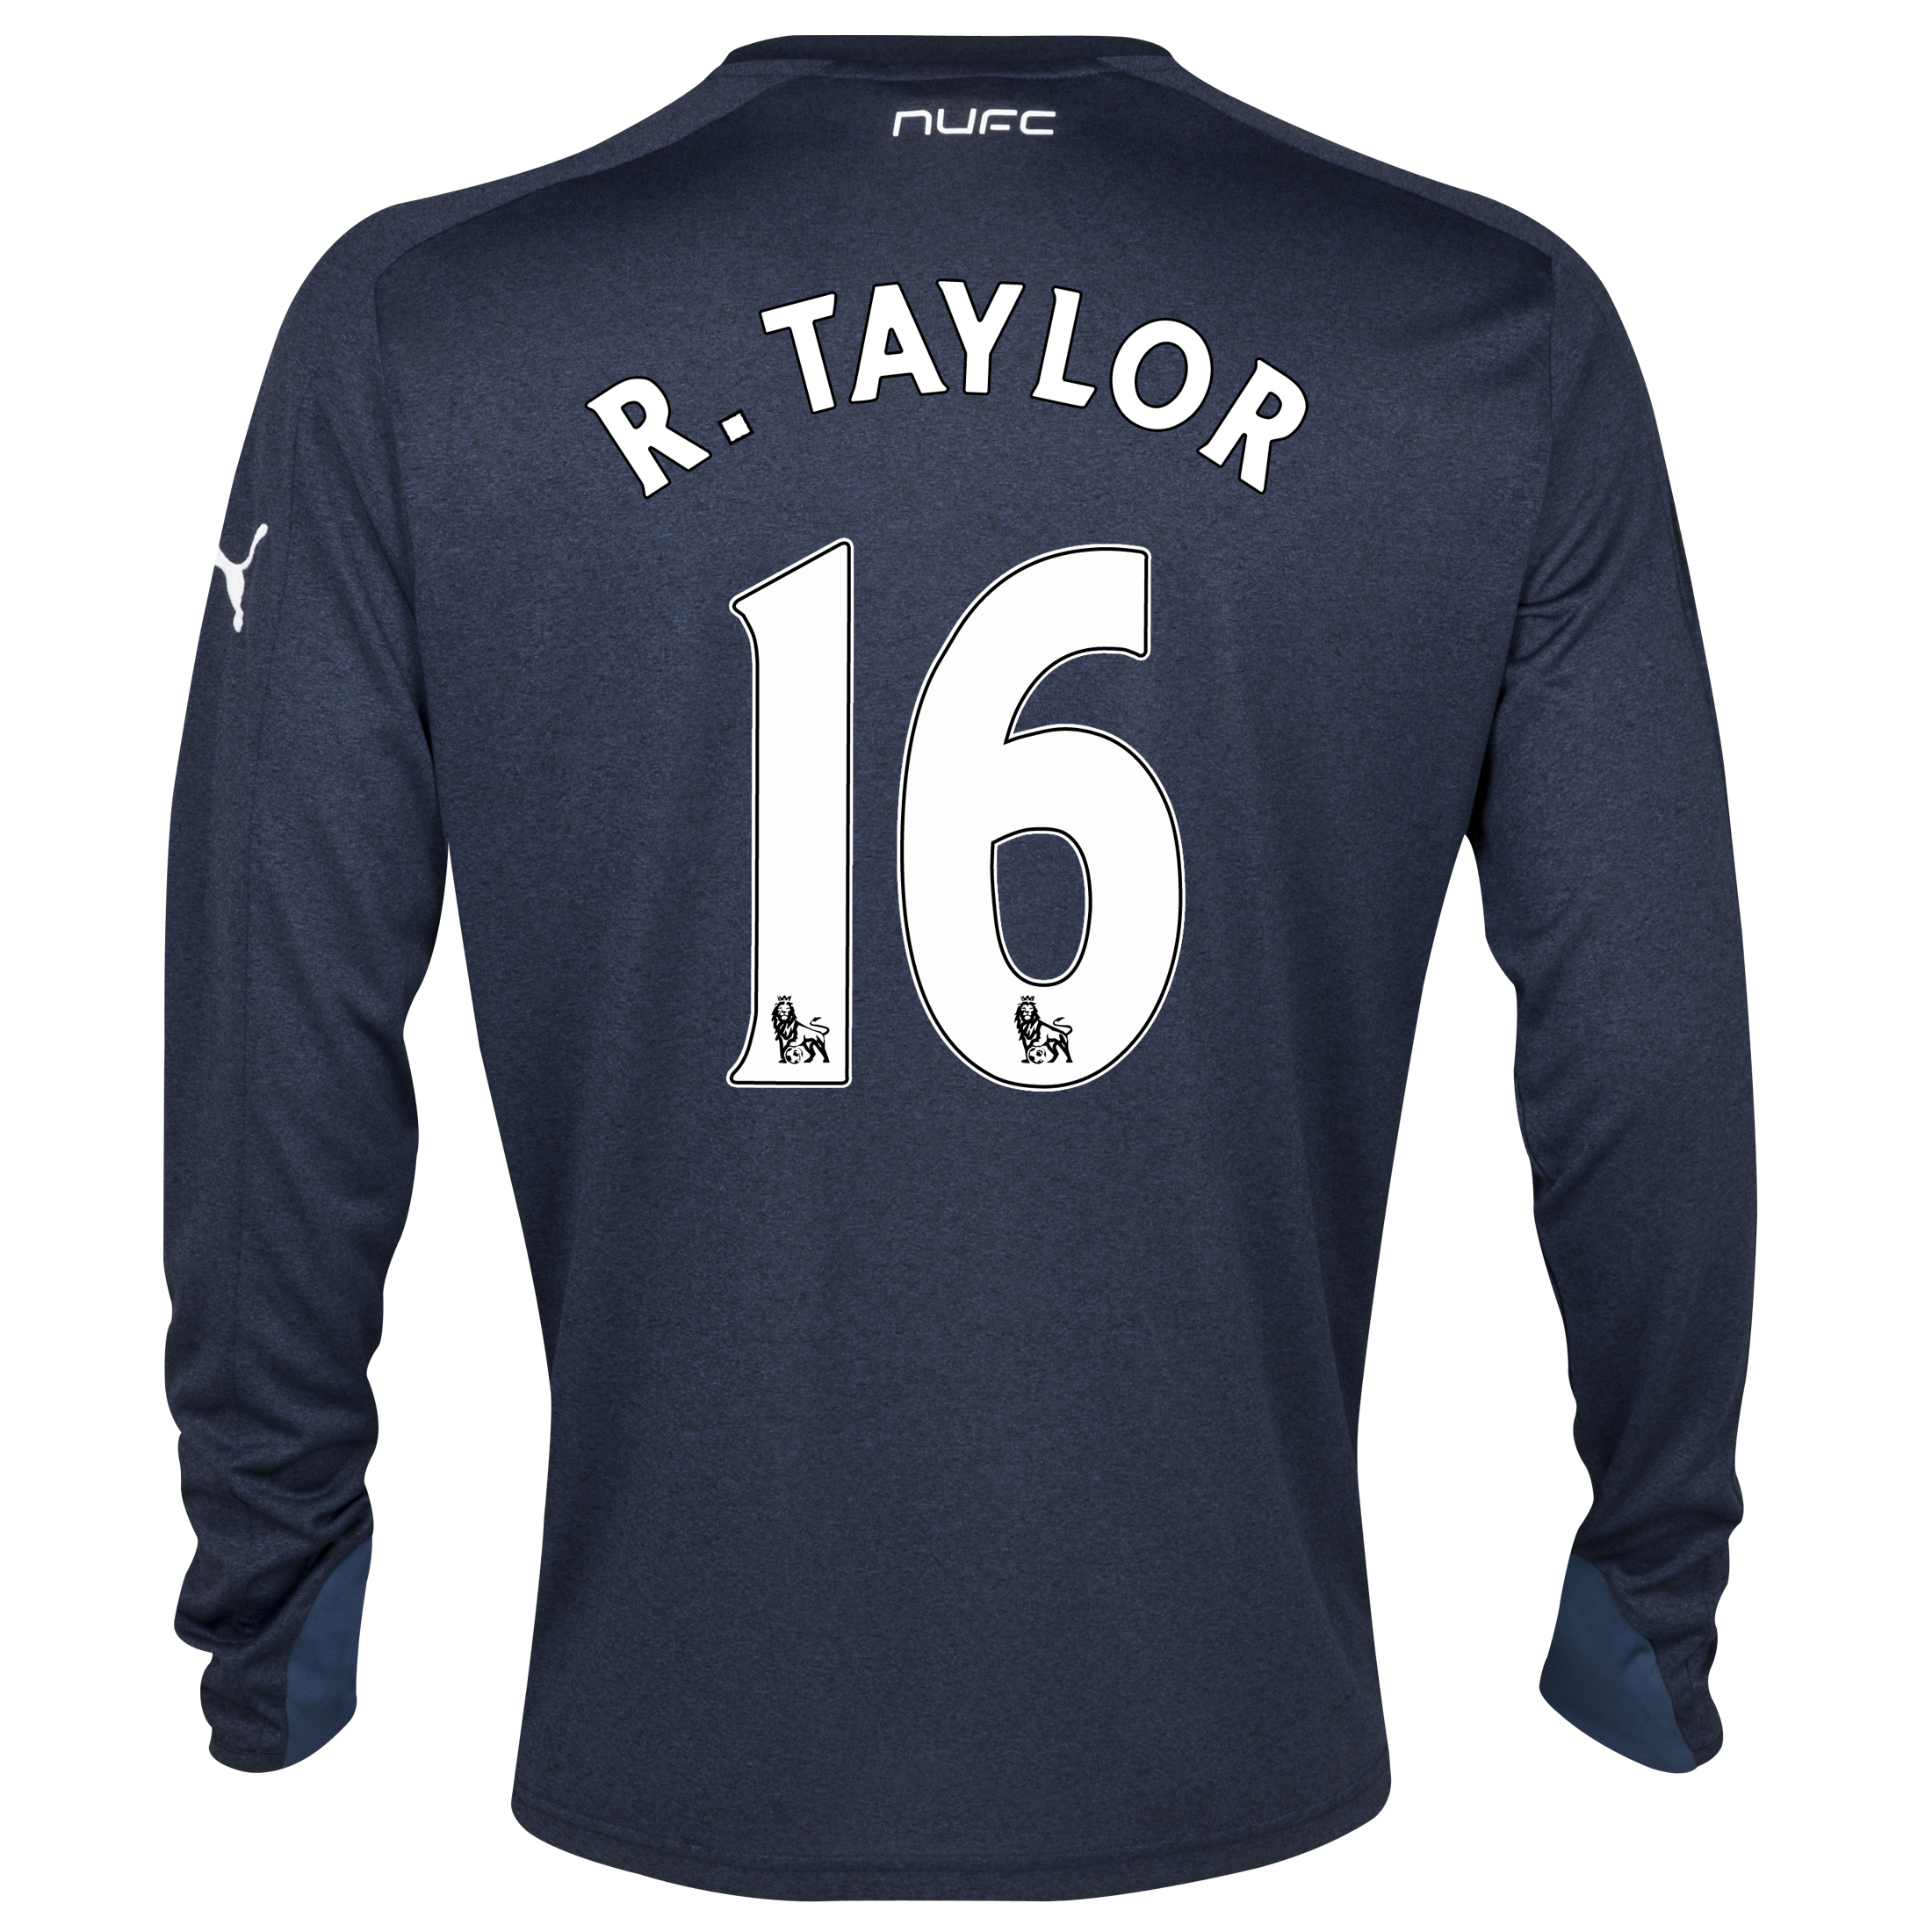 Newcastle United Away Shirt 2013/14- Long Sleeve with R. Taylor 16 printing